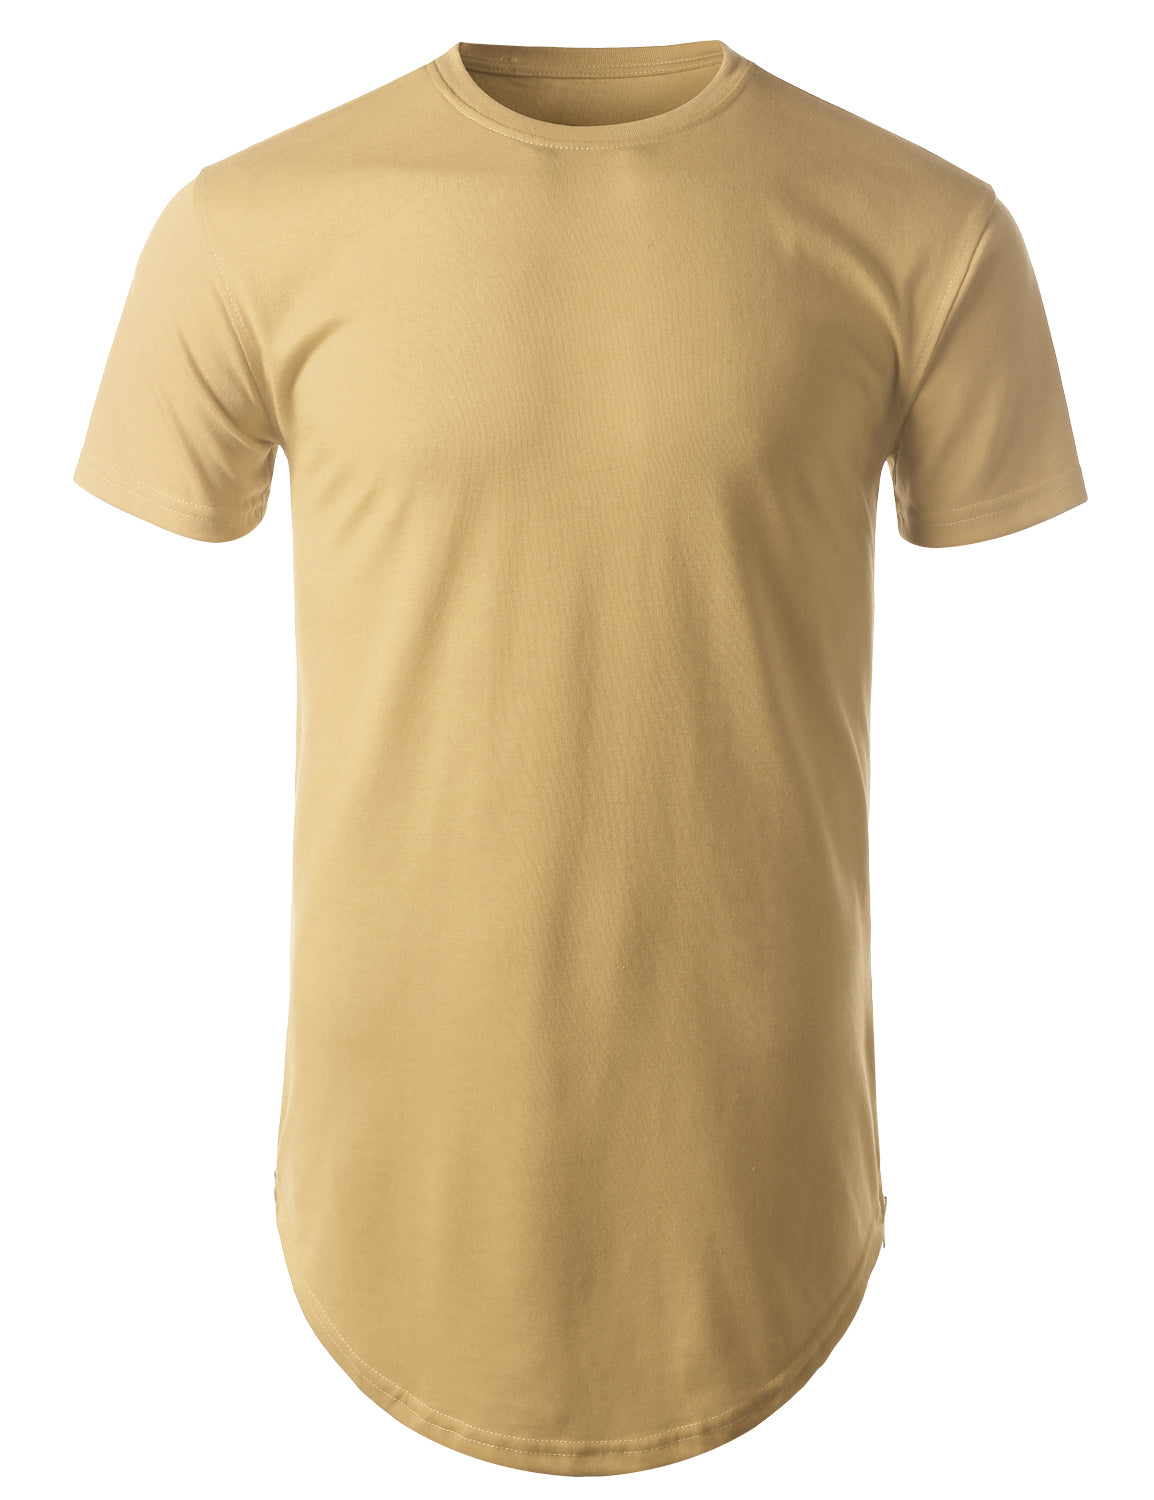 KHAKI Basic Longline Crewneck T-shirt with Side Zippers - URBANCREWS